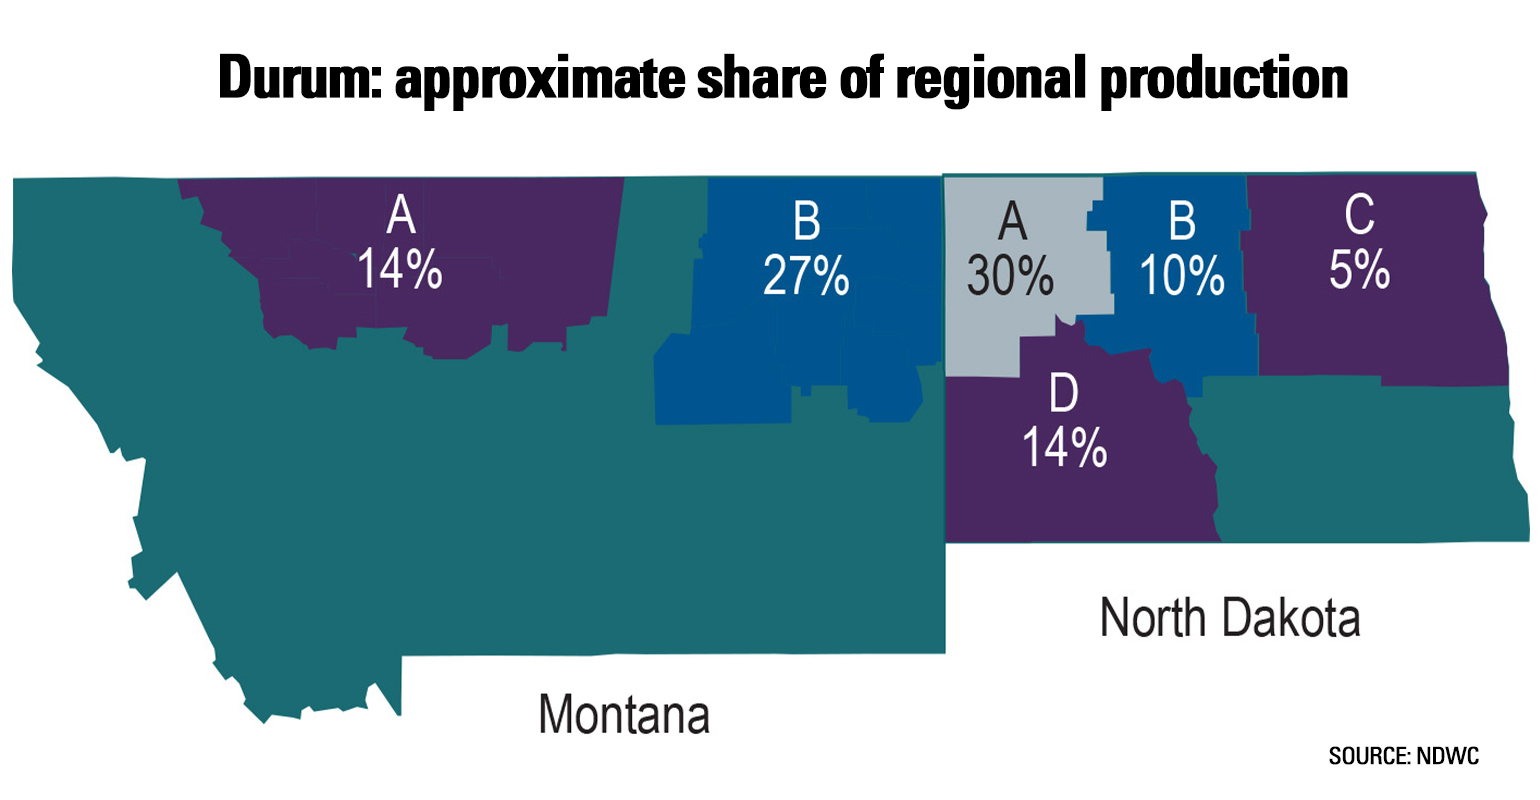 Map showing approximate share of regional production for durum